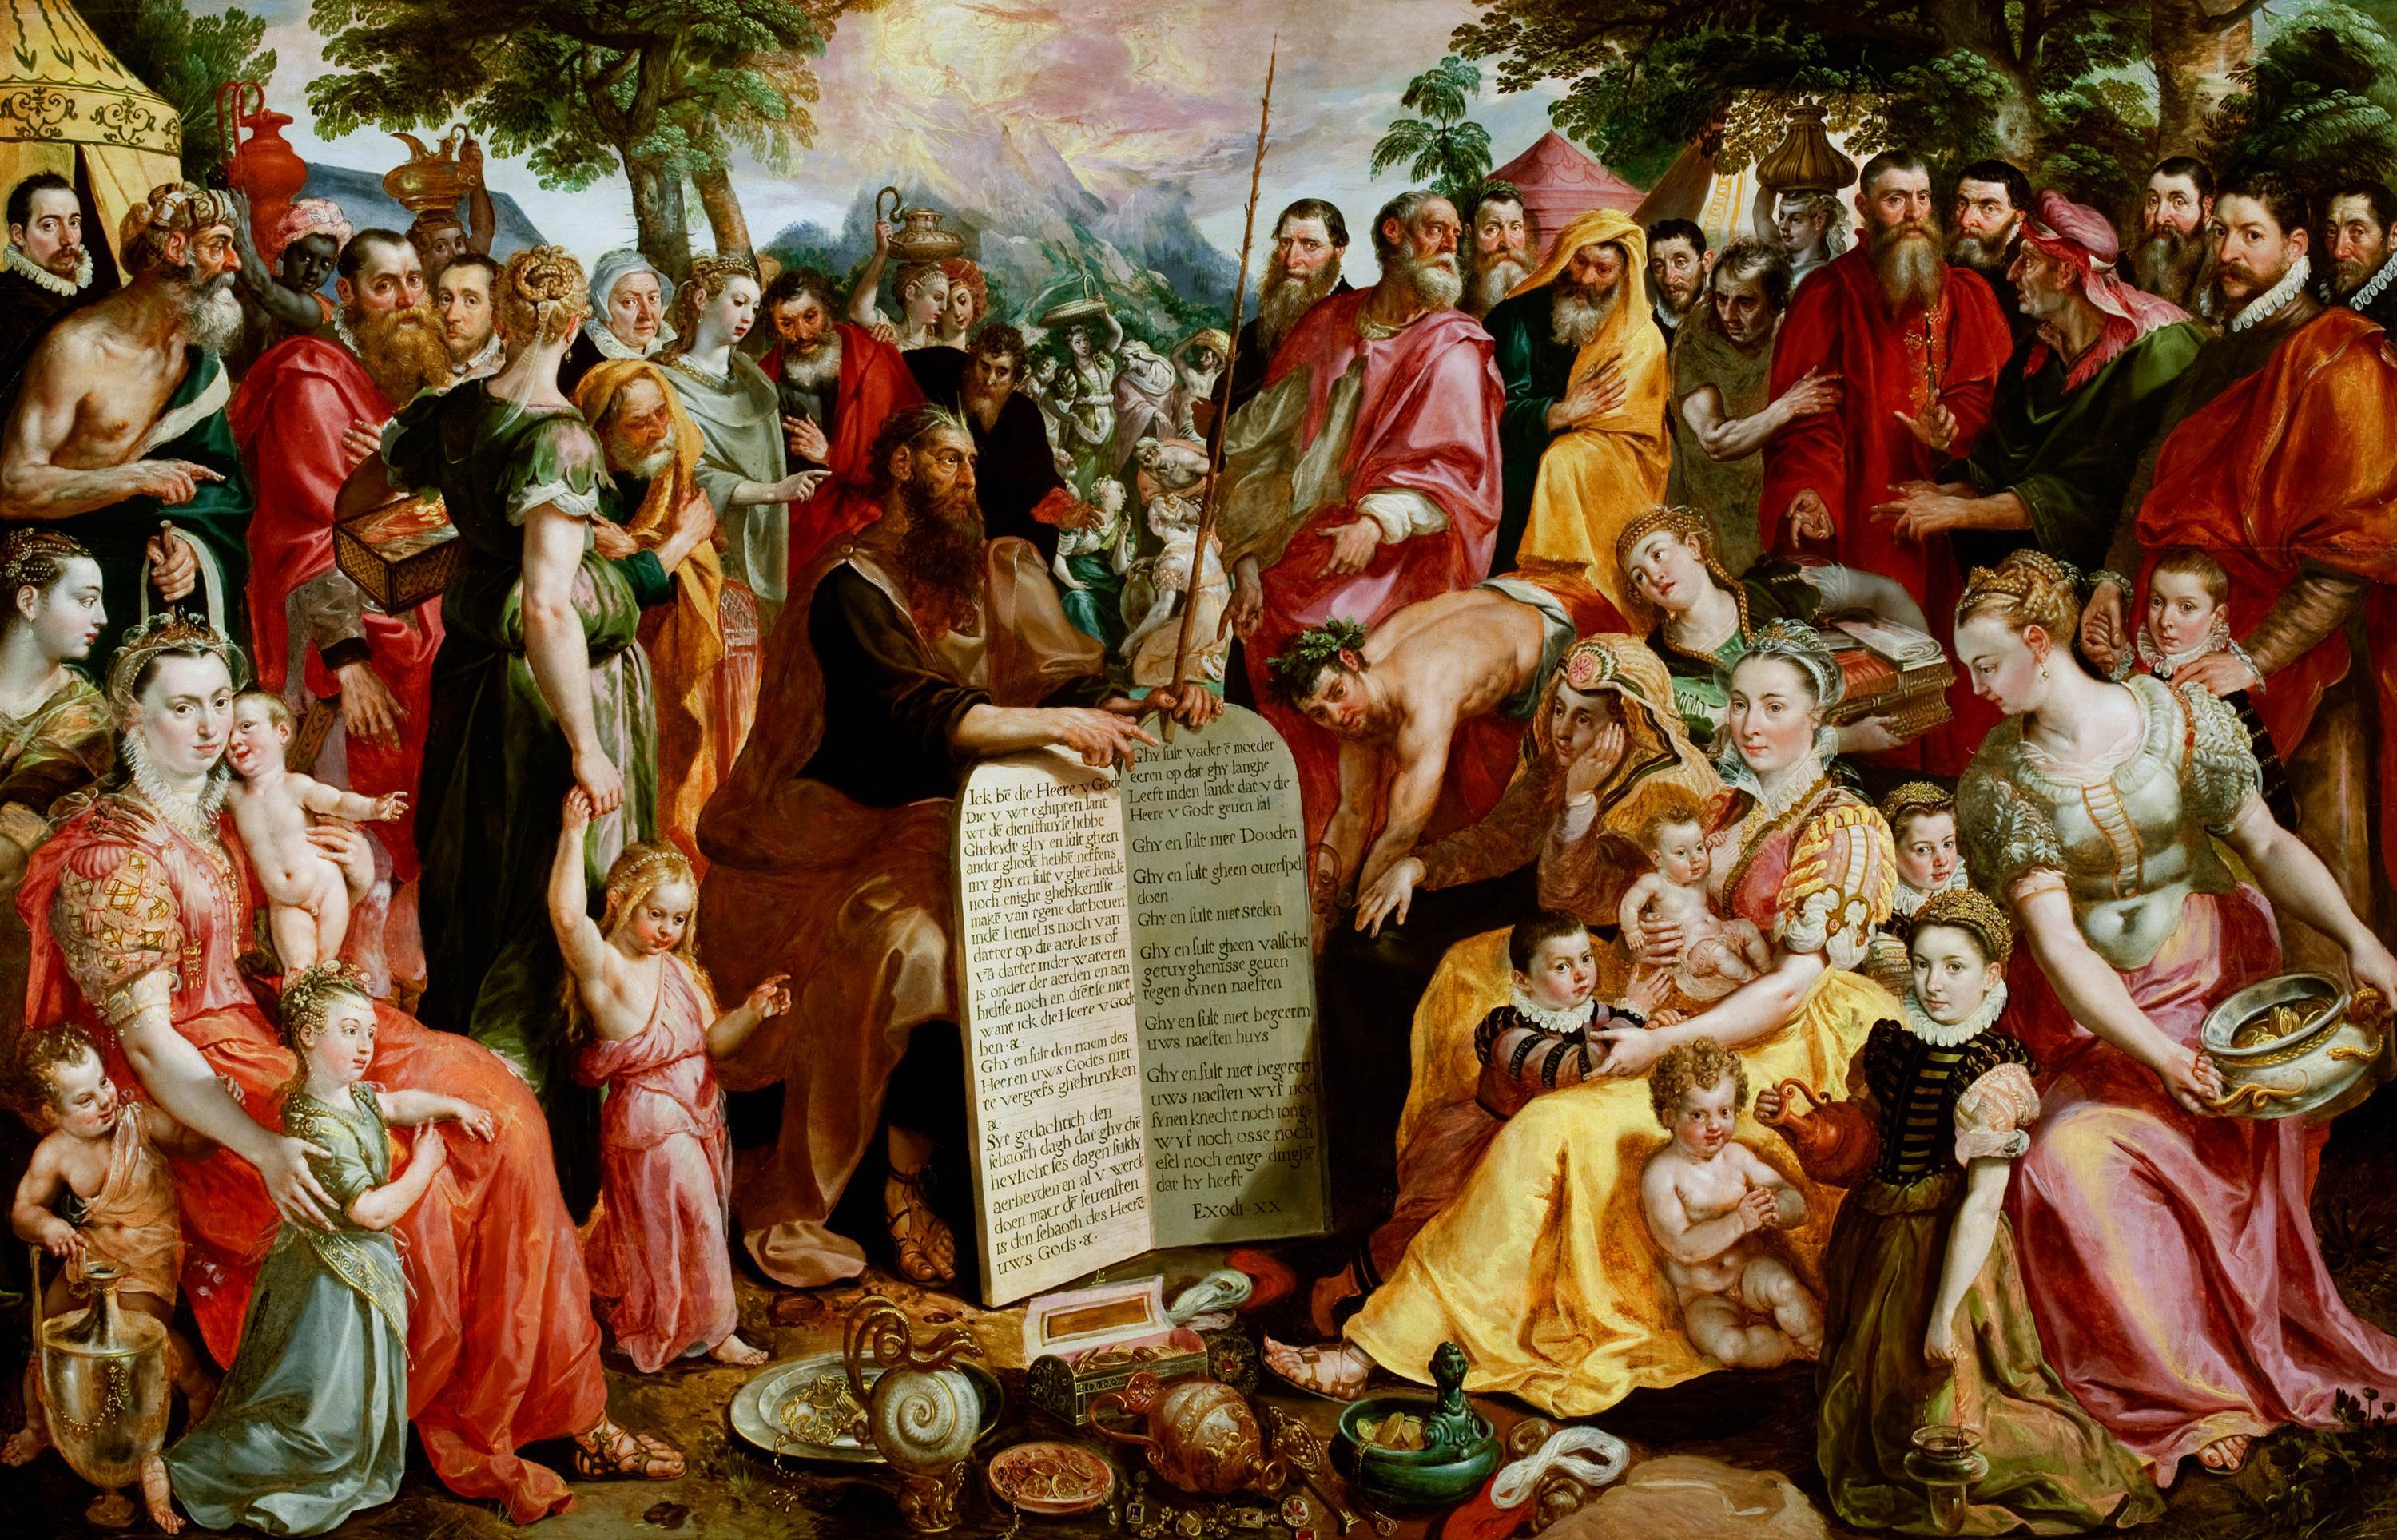 Moses showing his tablets of the Law. Painting by Pieter van Panhuys, 1835.(Wikimedia Commons)